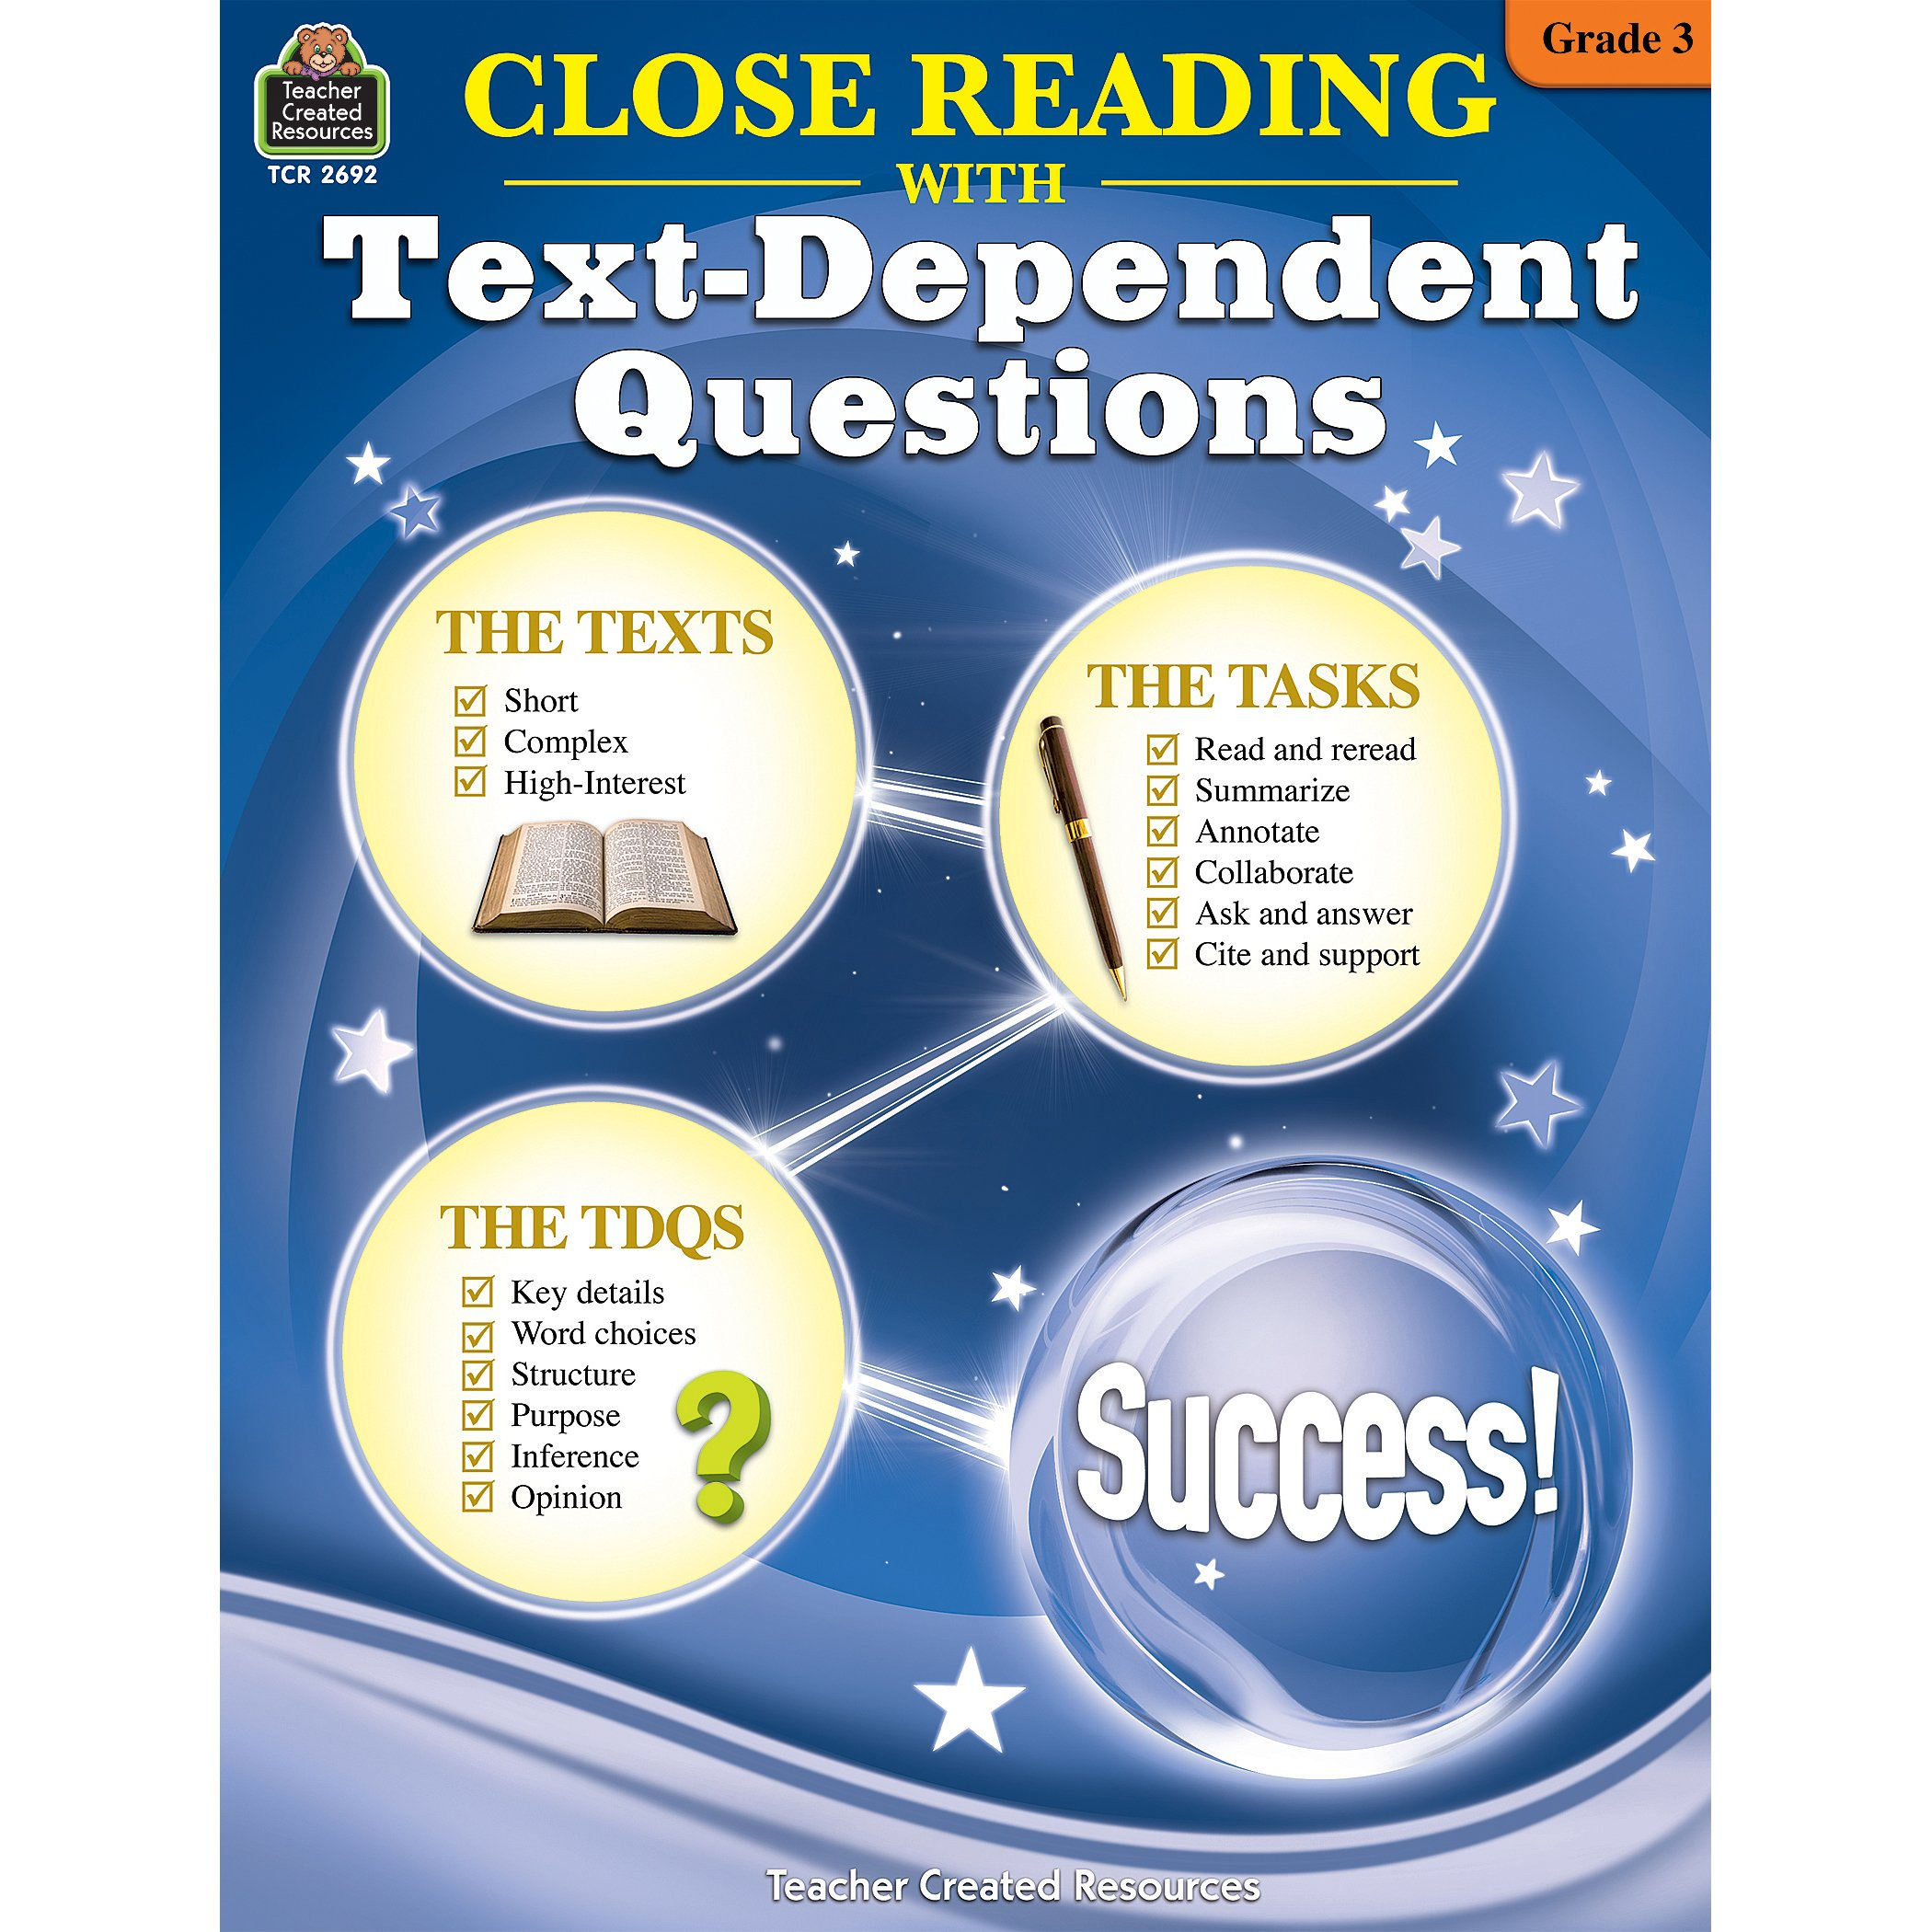 Close Reading Using Text-Dependent Questions Grade 3: Ruth Foster M:  9781420626926: Amazon.com: Books